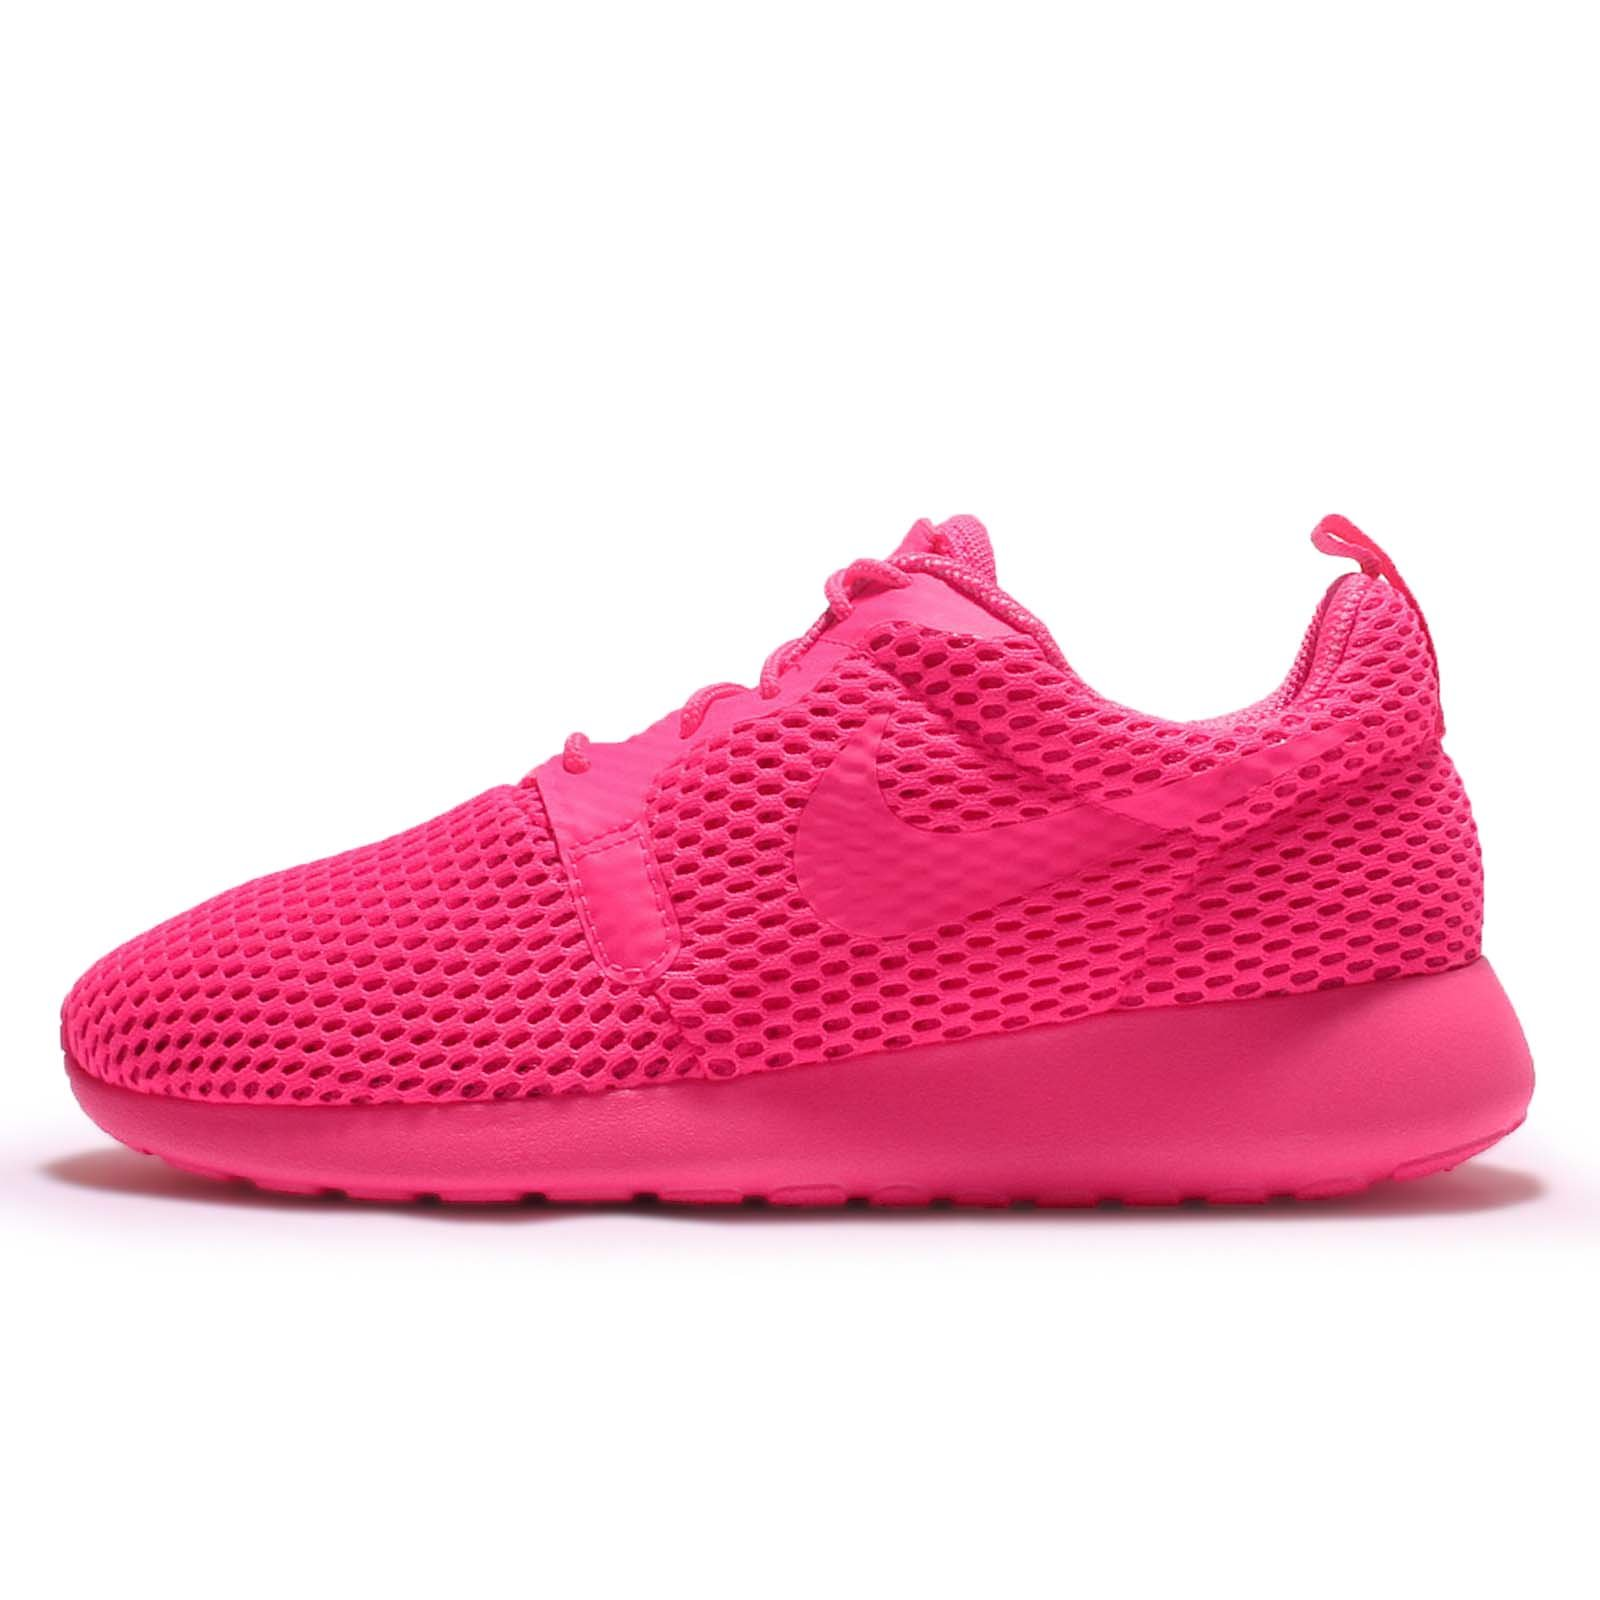 b9ddbb6cb9e1e Galleon - Nike Womens Roshe One HYP BR Running Trainers 833826 Sneakers  Shoes (US 8.5